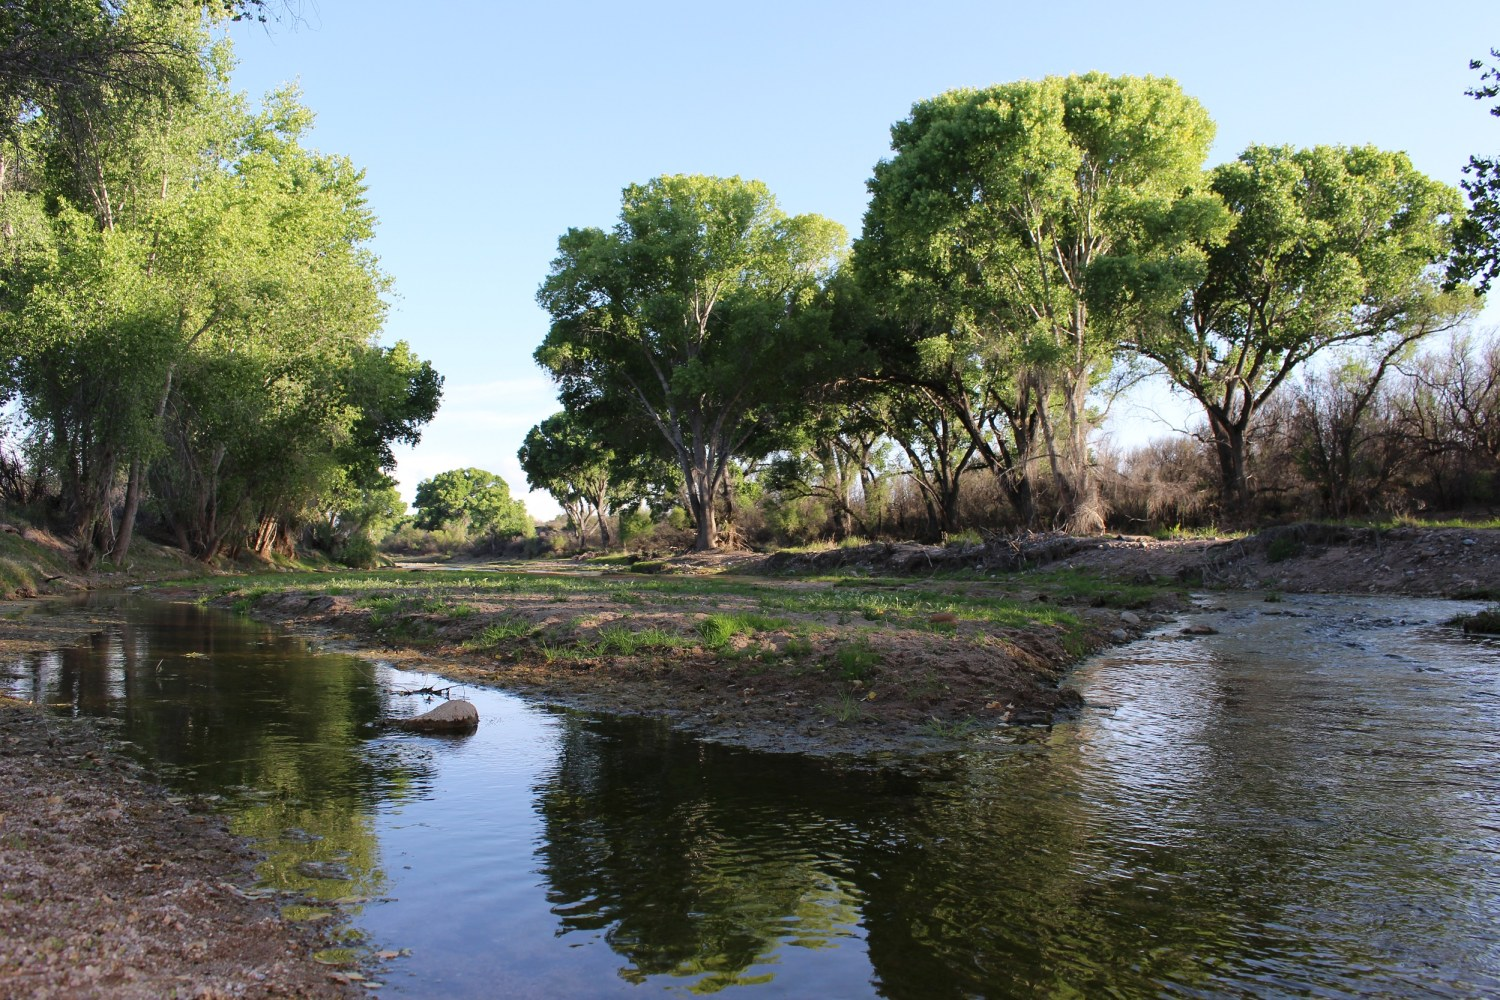 The San Pedro River is fed by groundwater flowing from the San Pedro Aquifer, which spans the U.S.-Mexican border. Through a collaborative research program, scientists are gaining a better understanding of these cross-border aquifers. Photo courtesy of the Bureau of Land Management